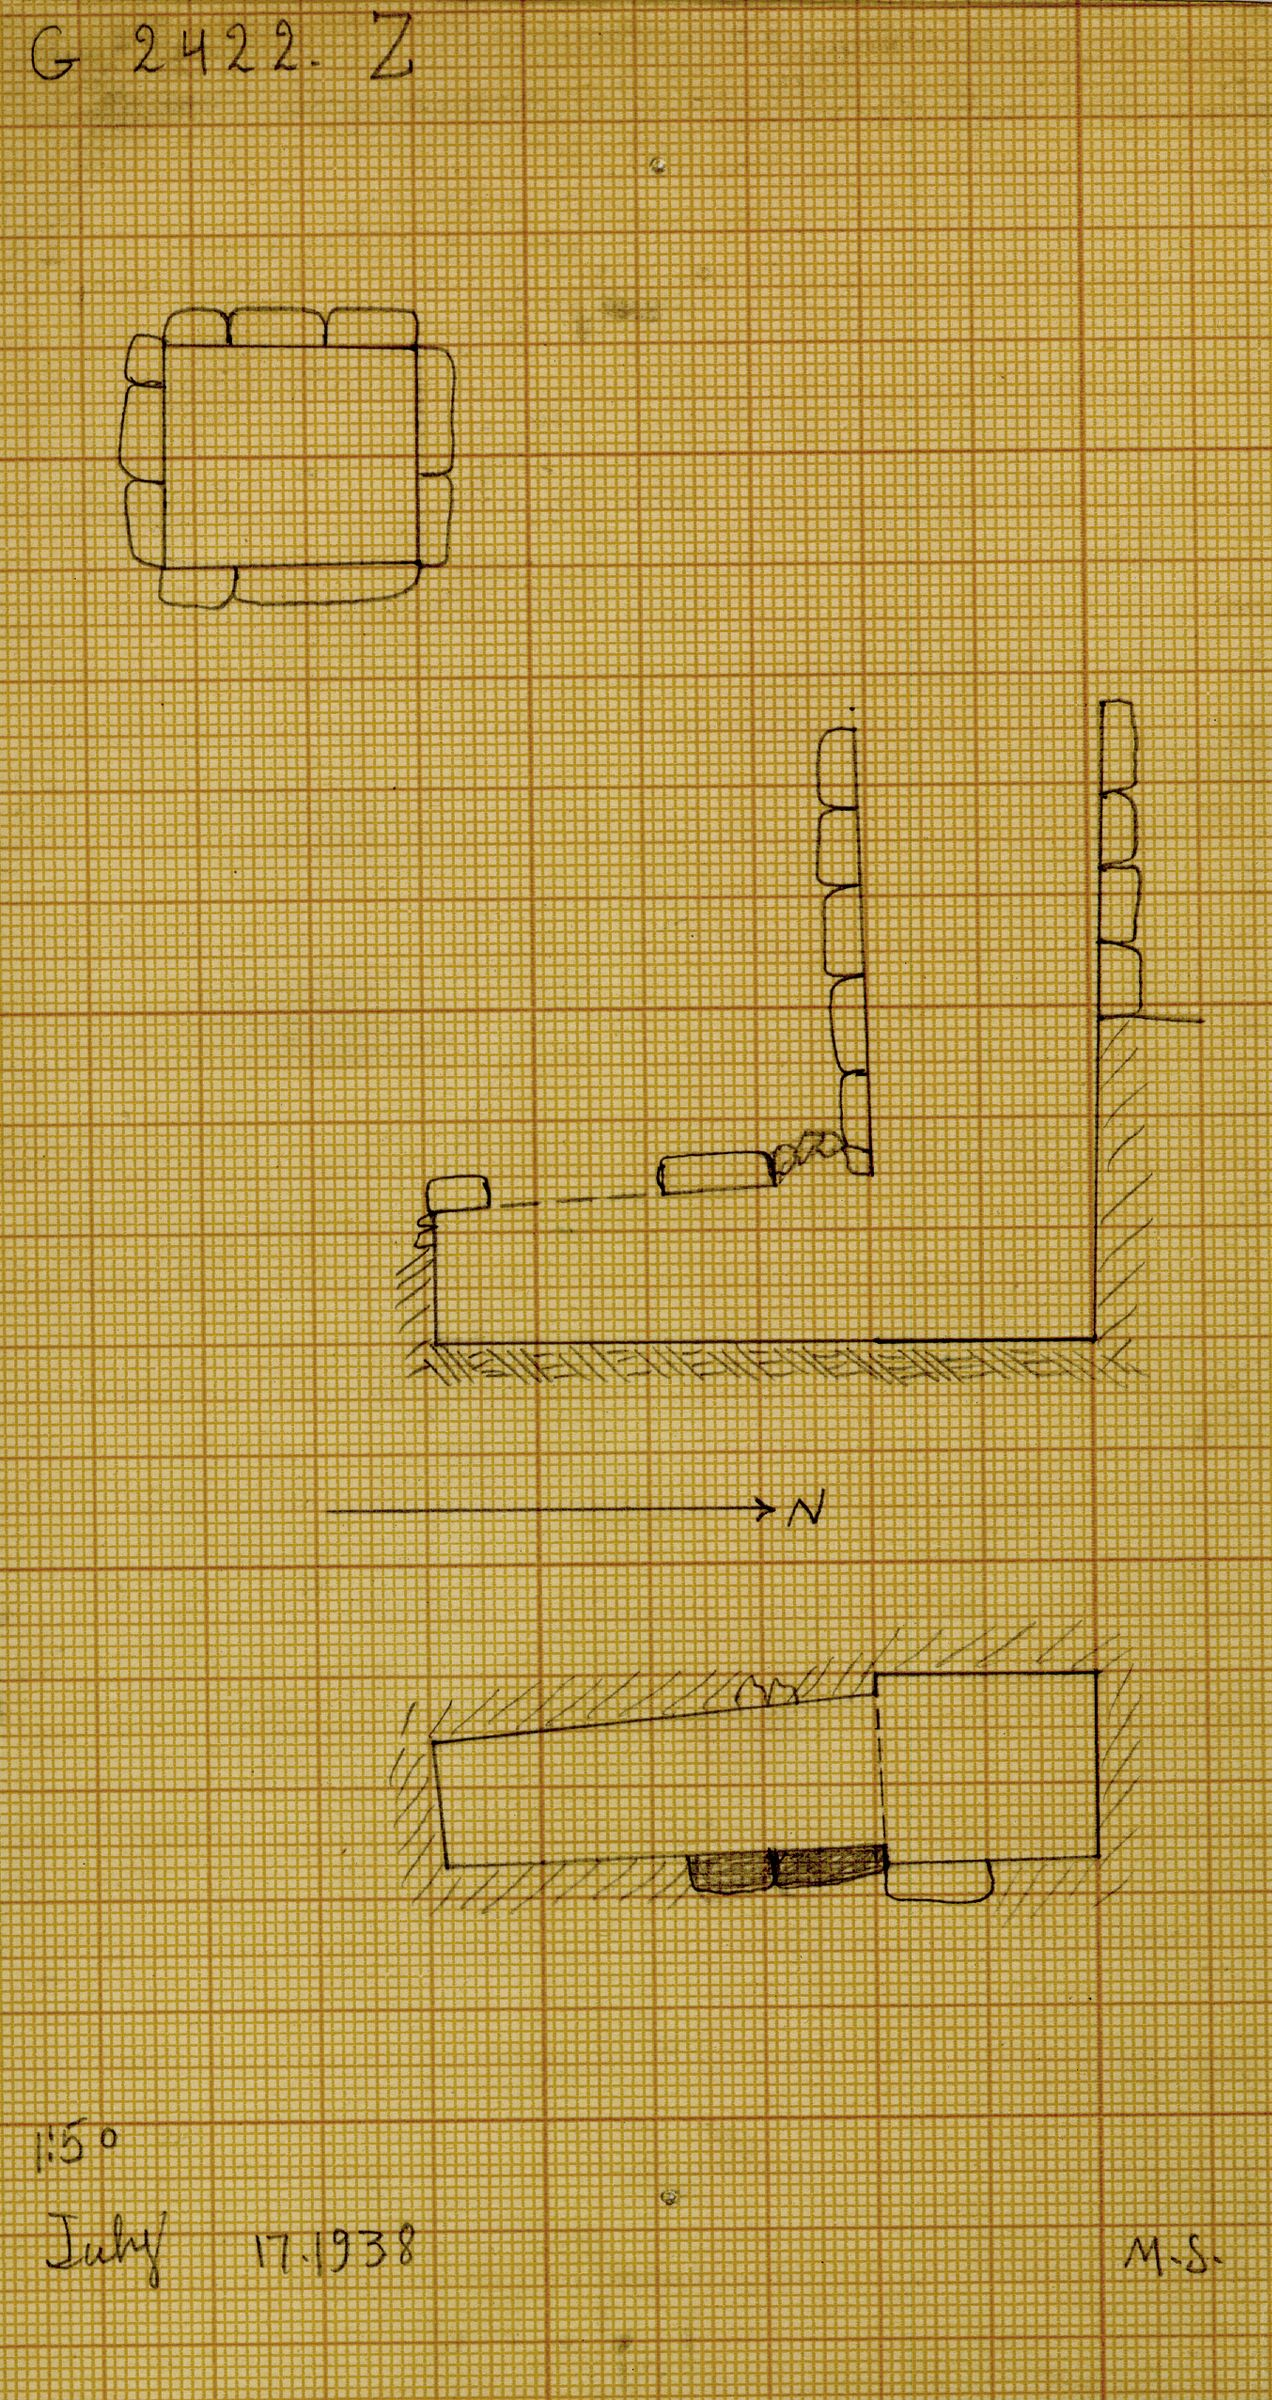 Maps and plans: G 2422, Shaft Z